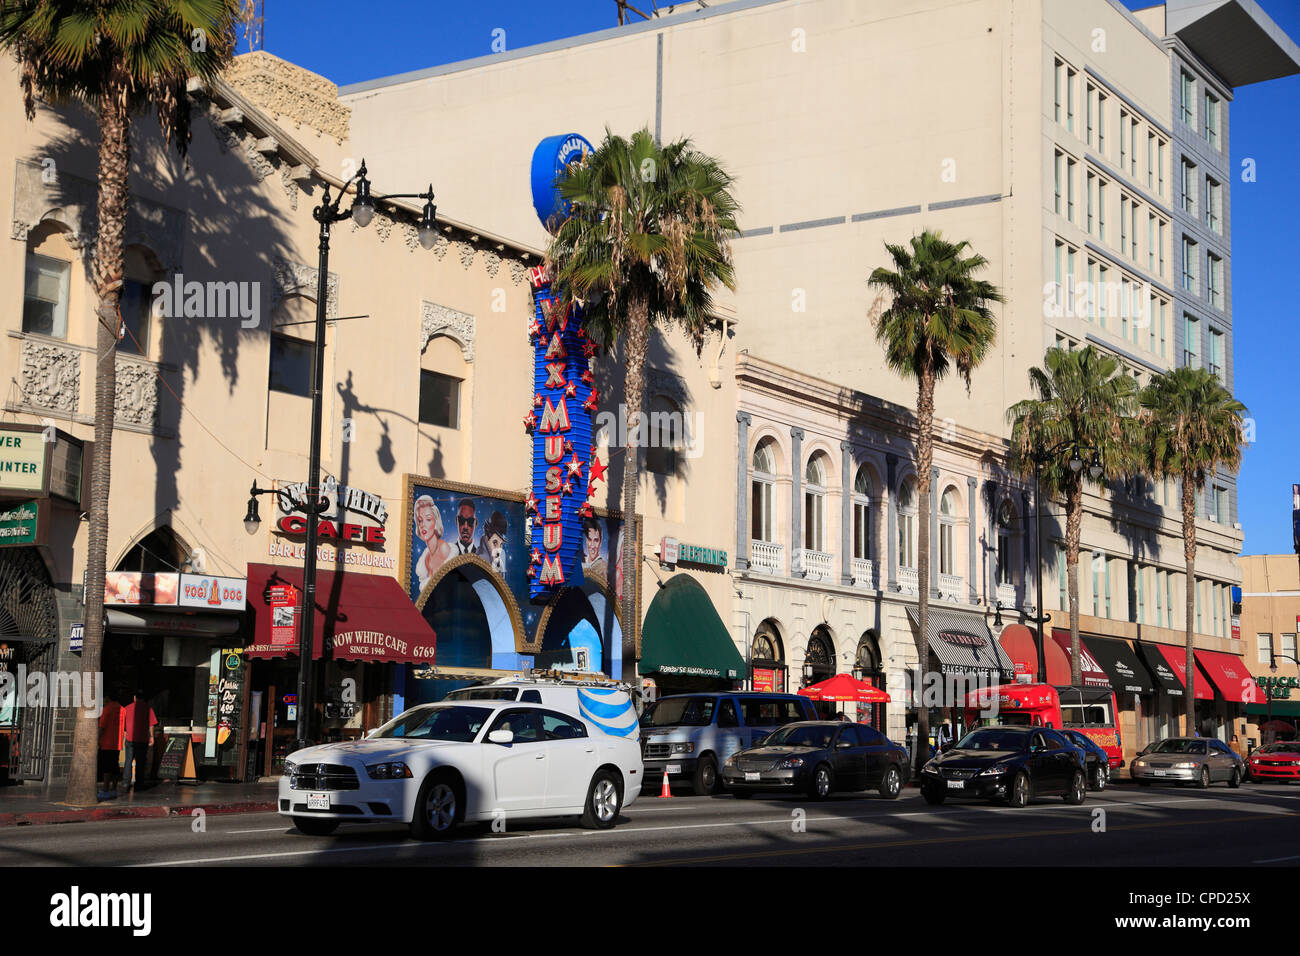 Hollywood Boulevard, Hollywood, Los Angeles, California, United States of America, North America - Stock Image